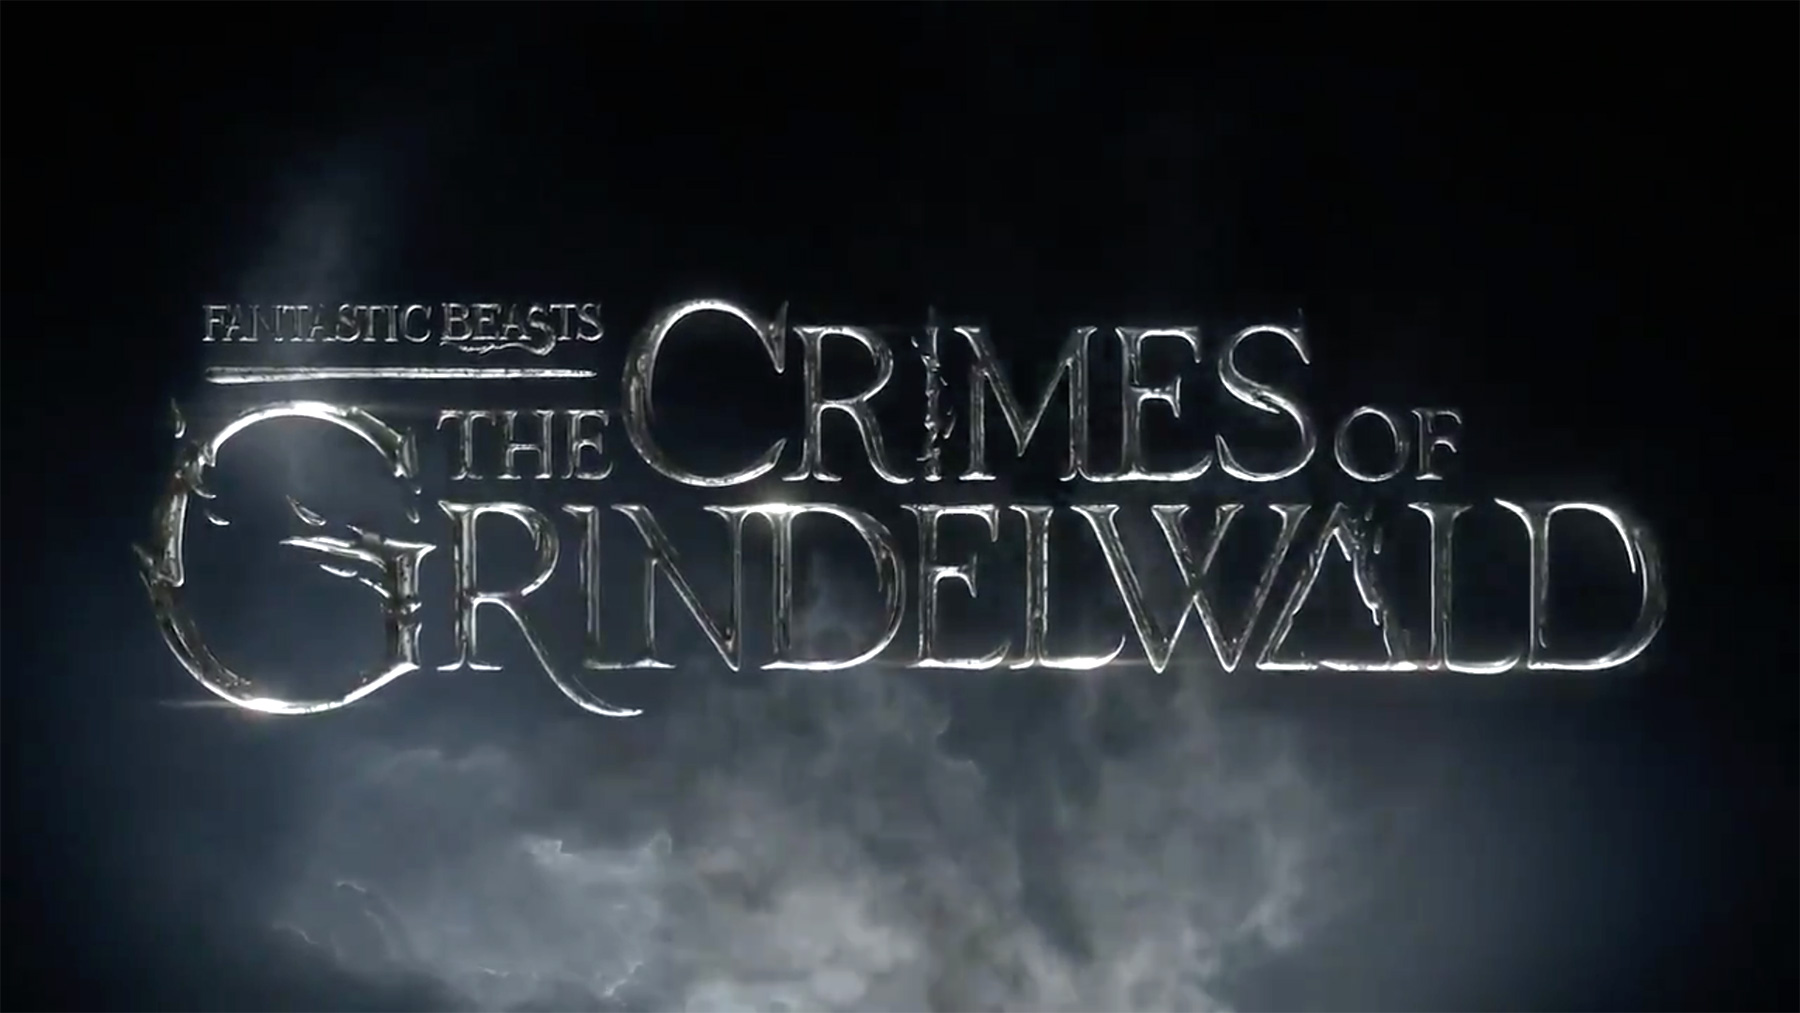 The new film's official title treatment